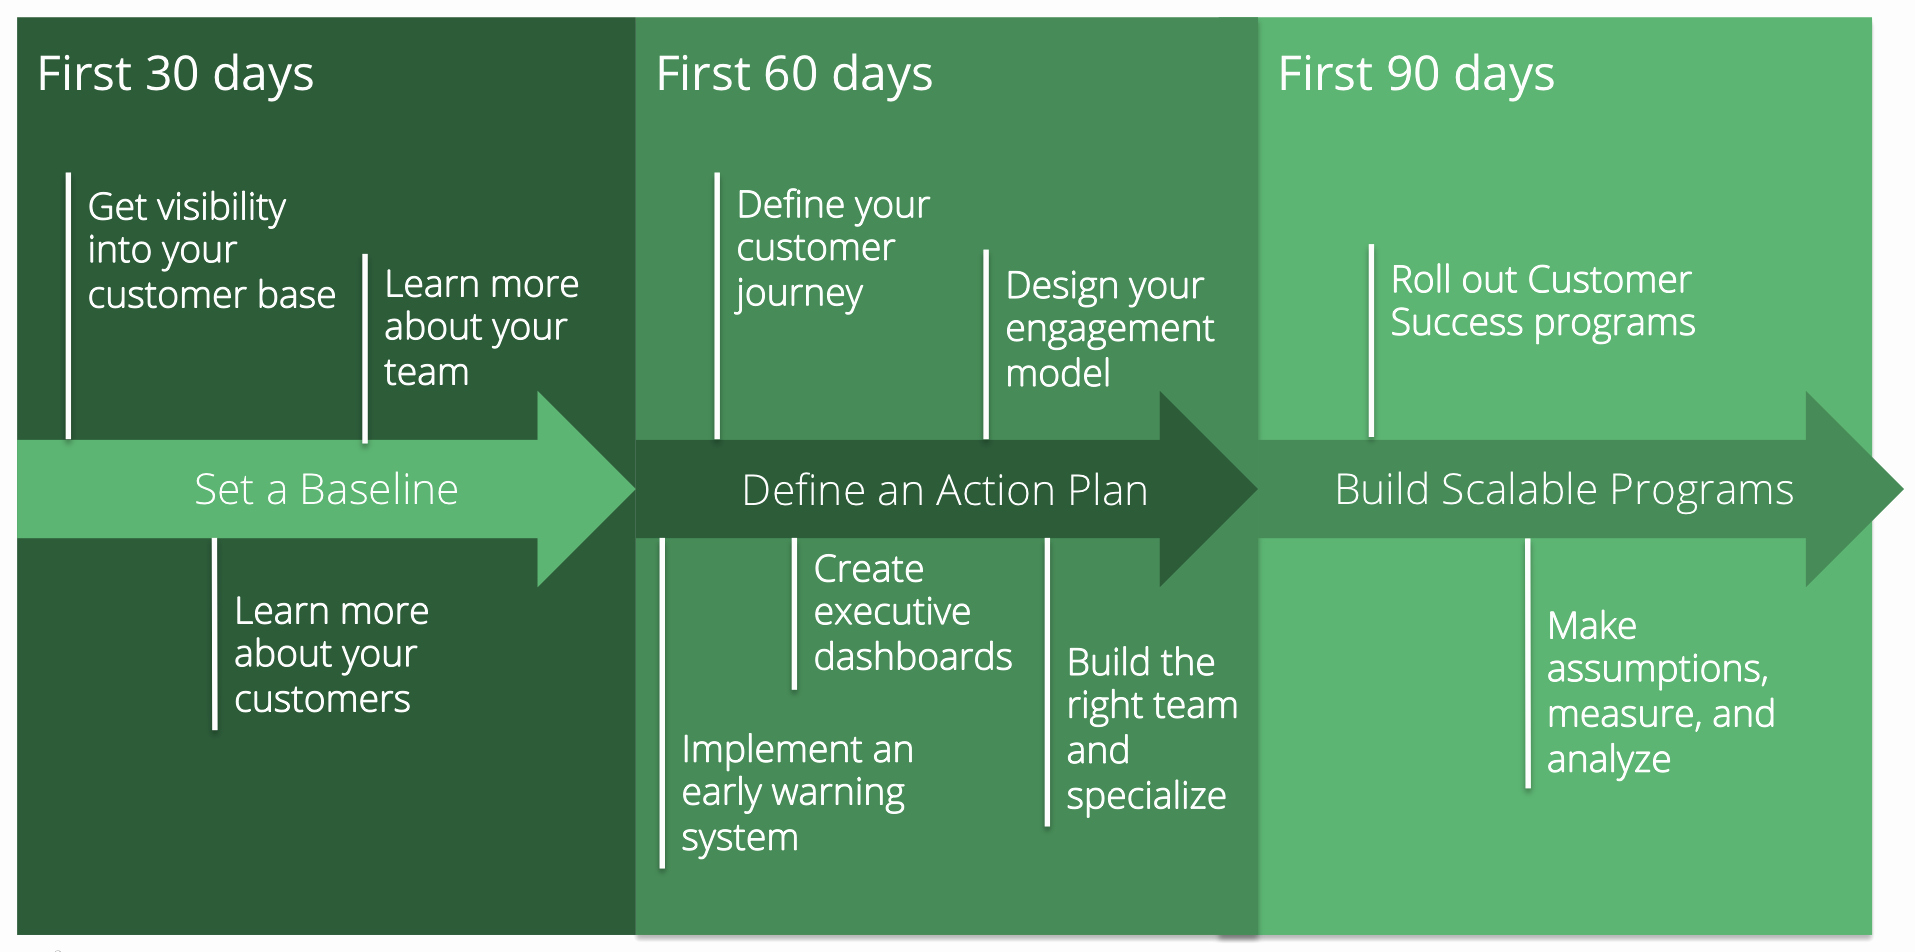 90 Day Onboarding Plan Template Unique Vp Of Customer Success 90 Day Action Plan for A New Manager